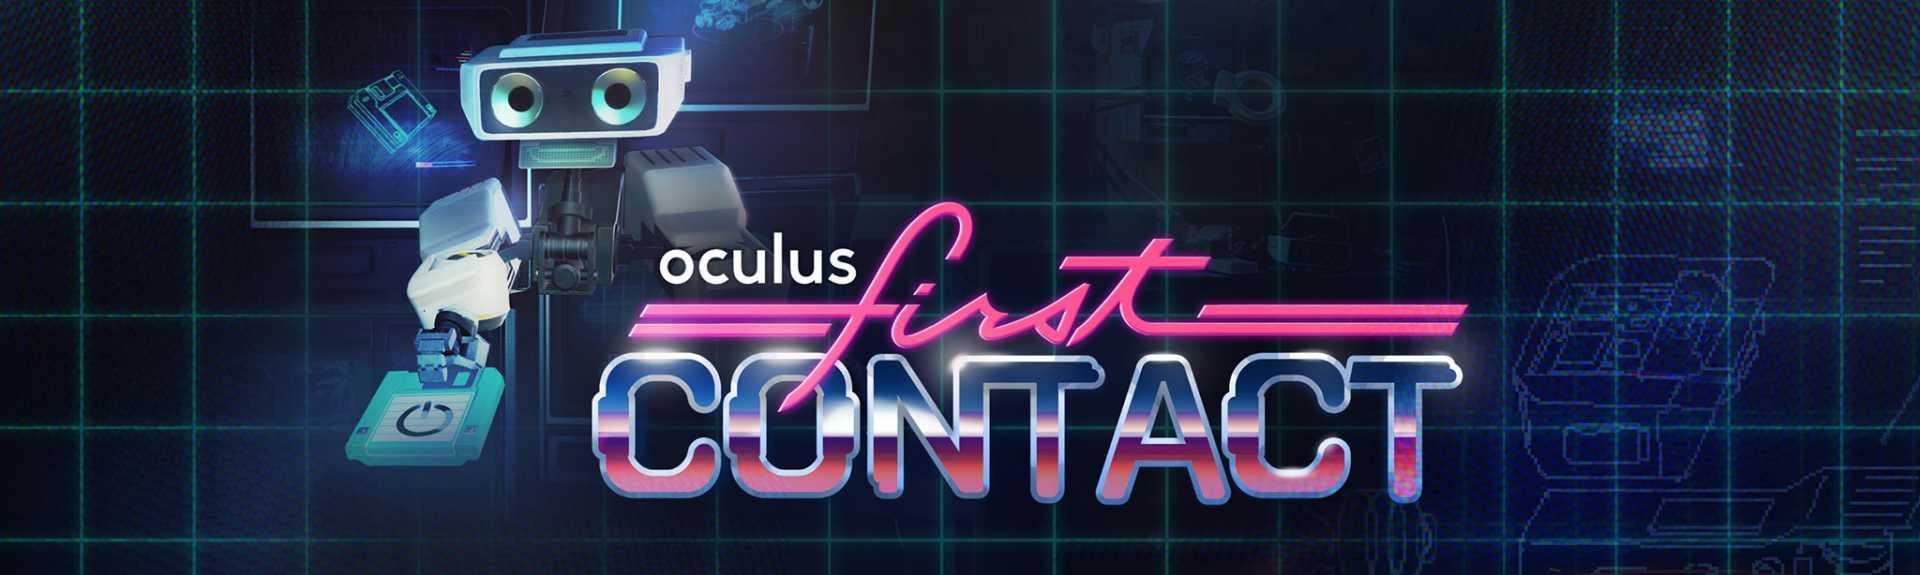 Oculus First Contact